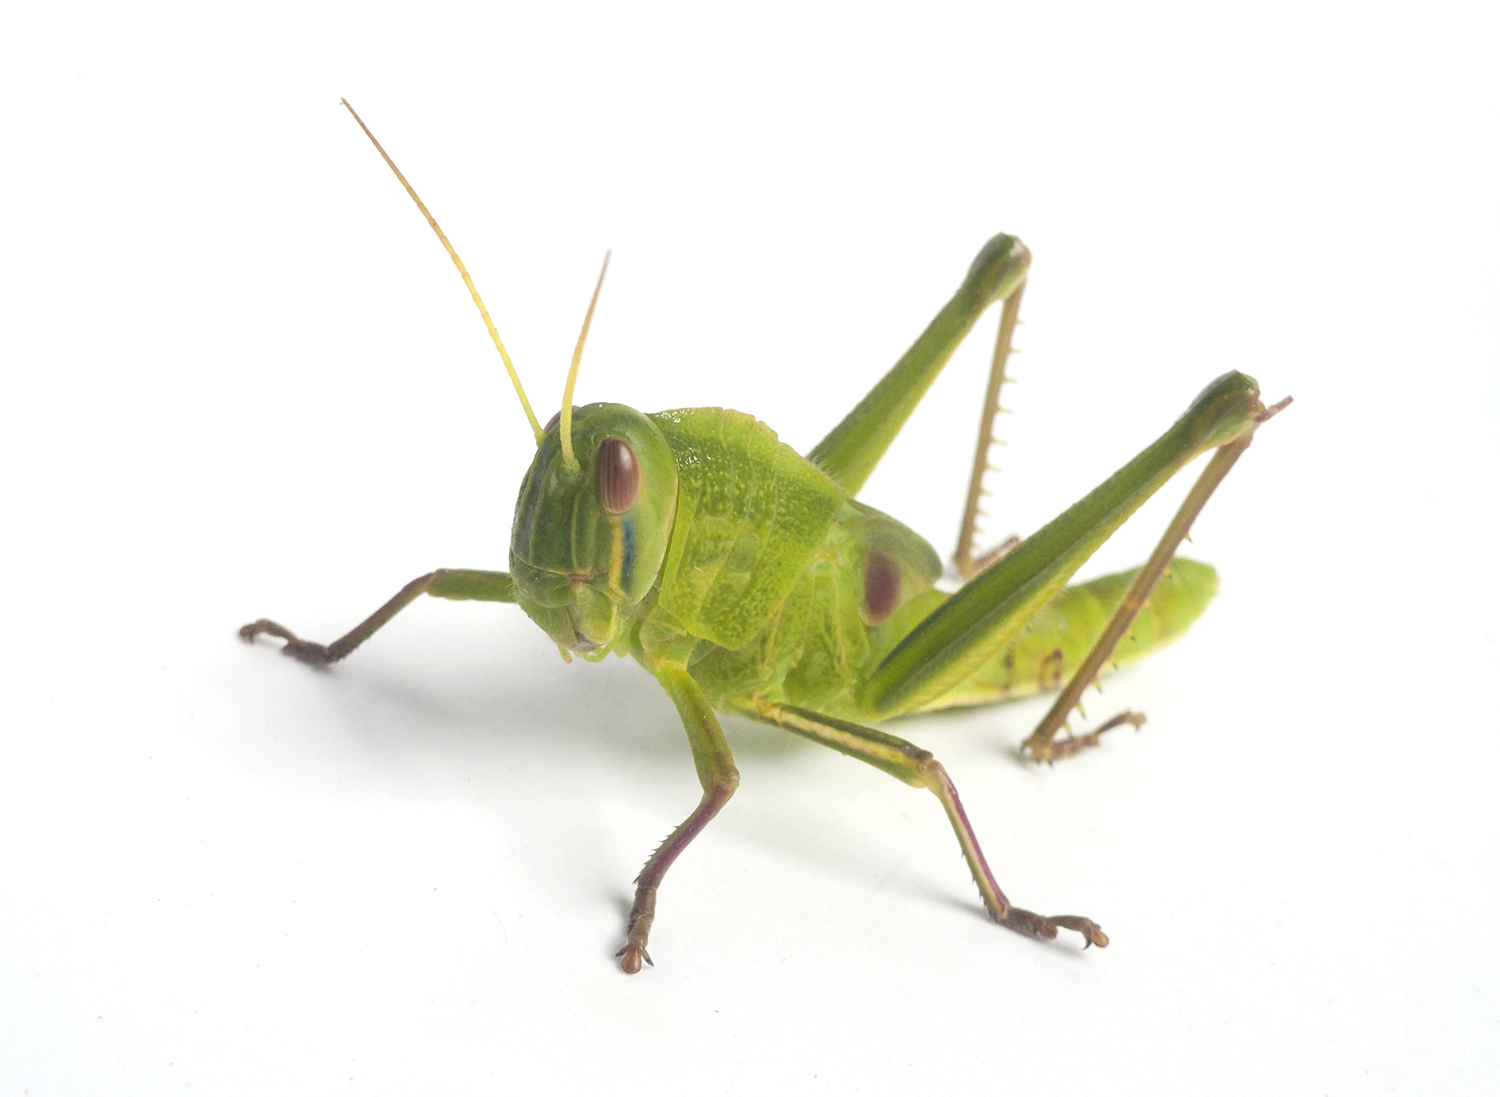 Grasshoppers how to control get rid of grasshoppers How to get rid of crickets in the garden